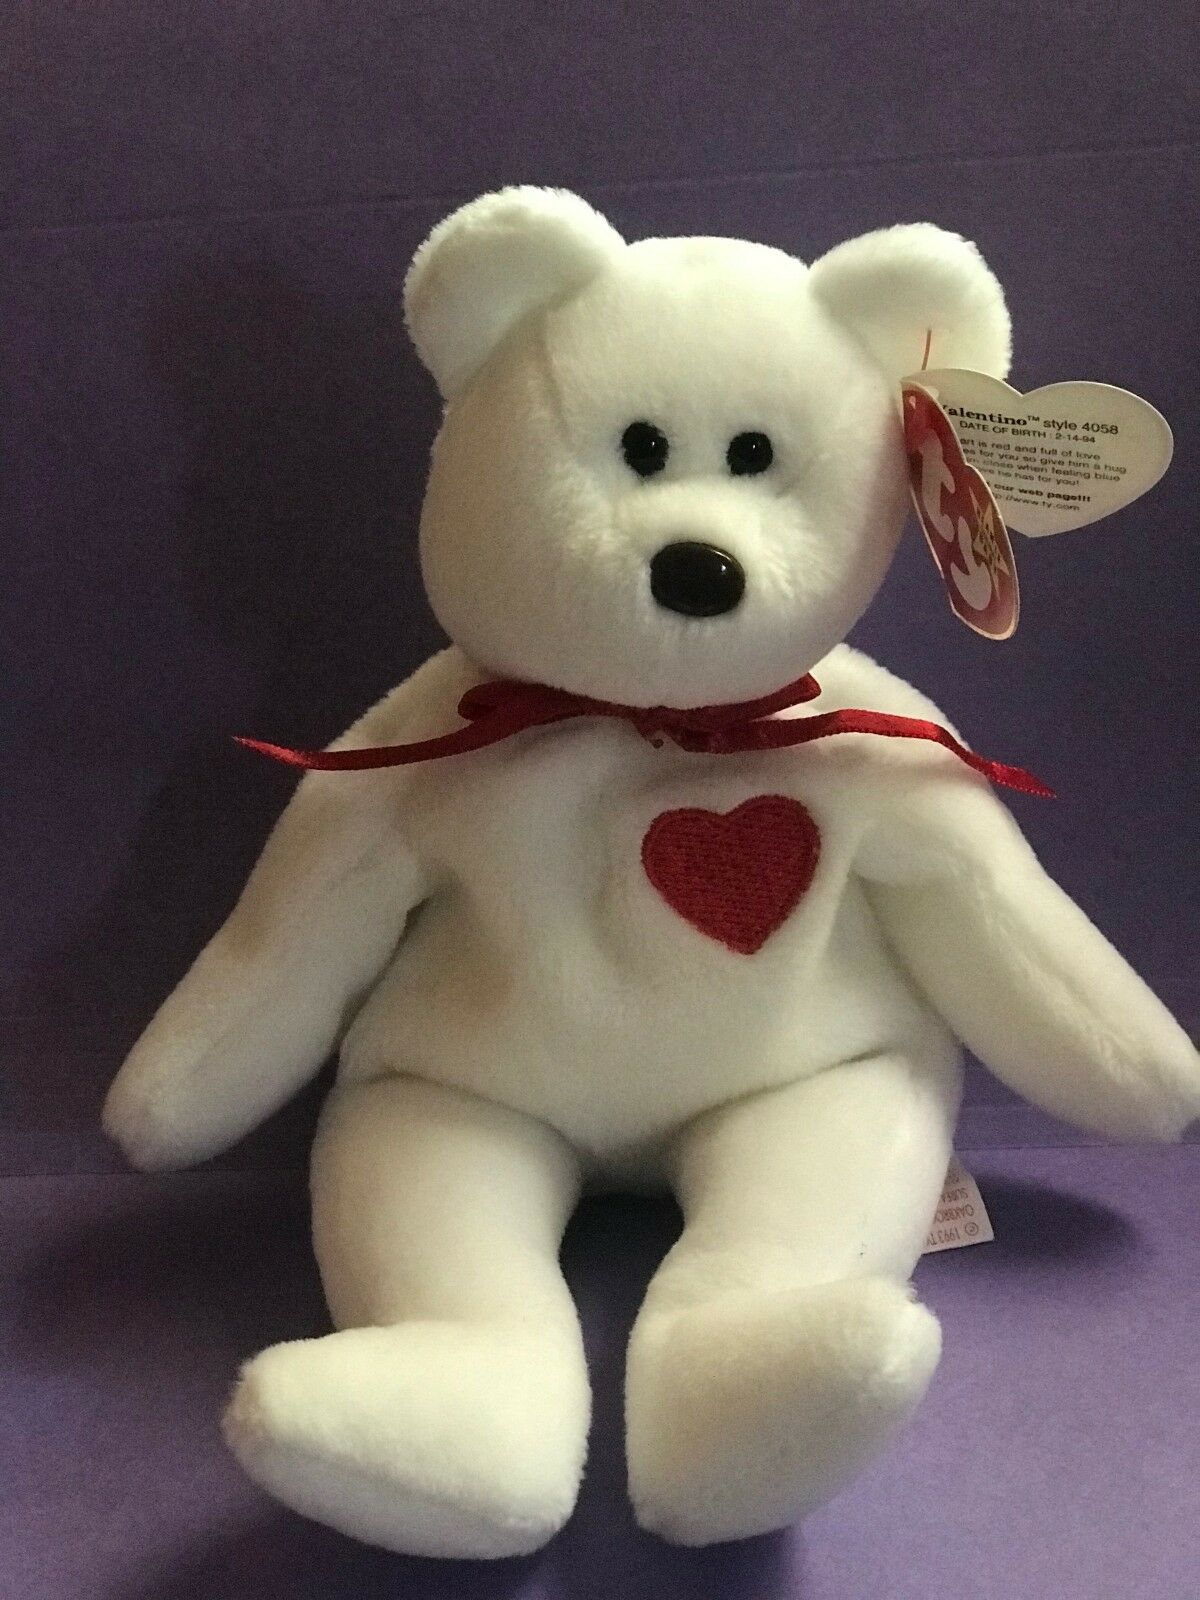 RARE Retired  Valentino Bear  Ty Beanie Babies w MINT tags, 1994 Stamp